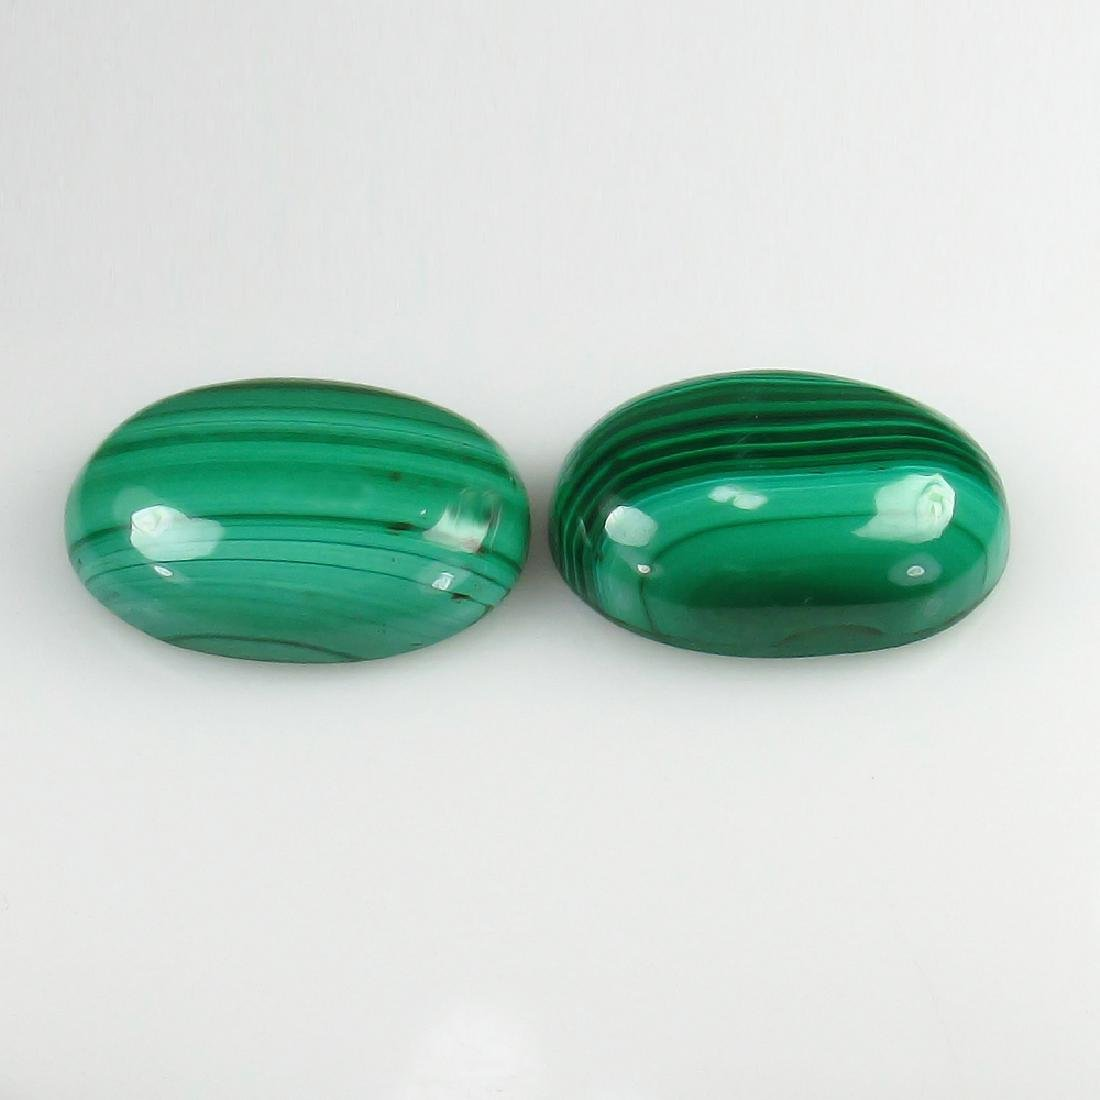 27.30 Ct Genuine Loose Malachite 18X13 mm Oval Matching - 2